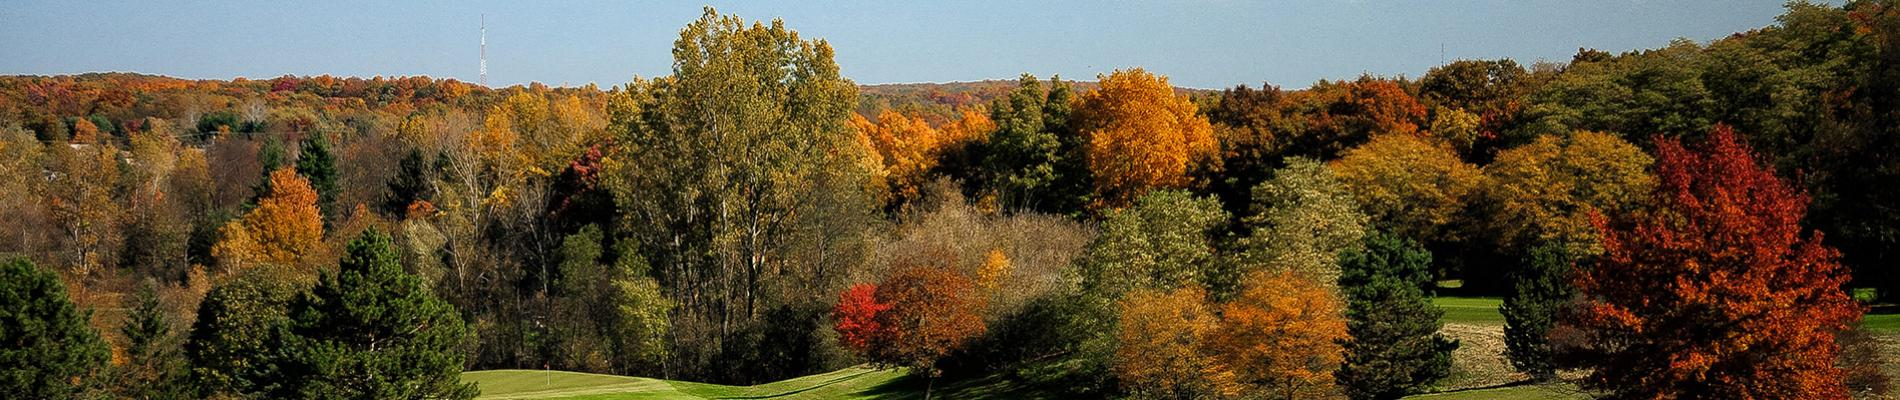 Rural Roots of Oakland County Parks